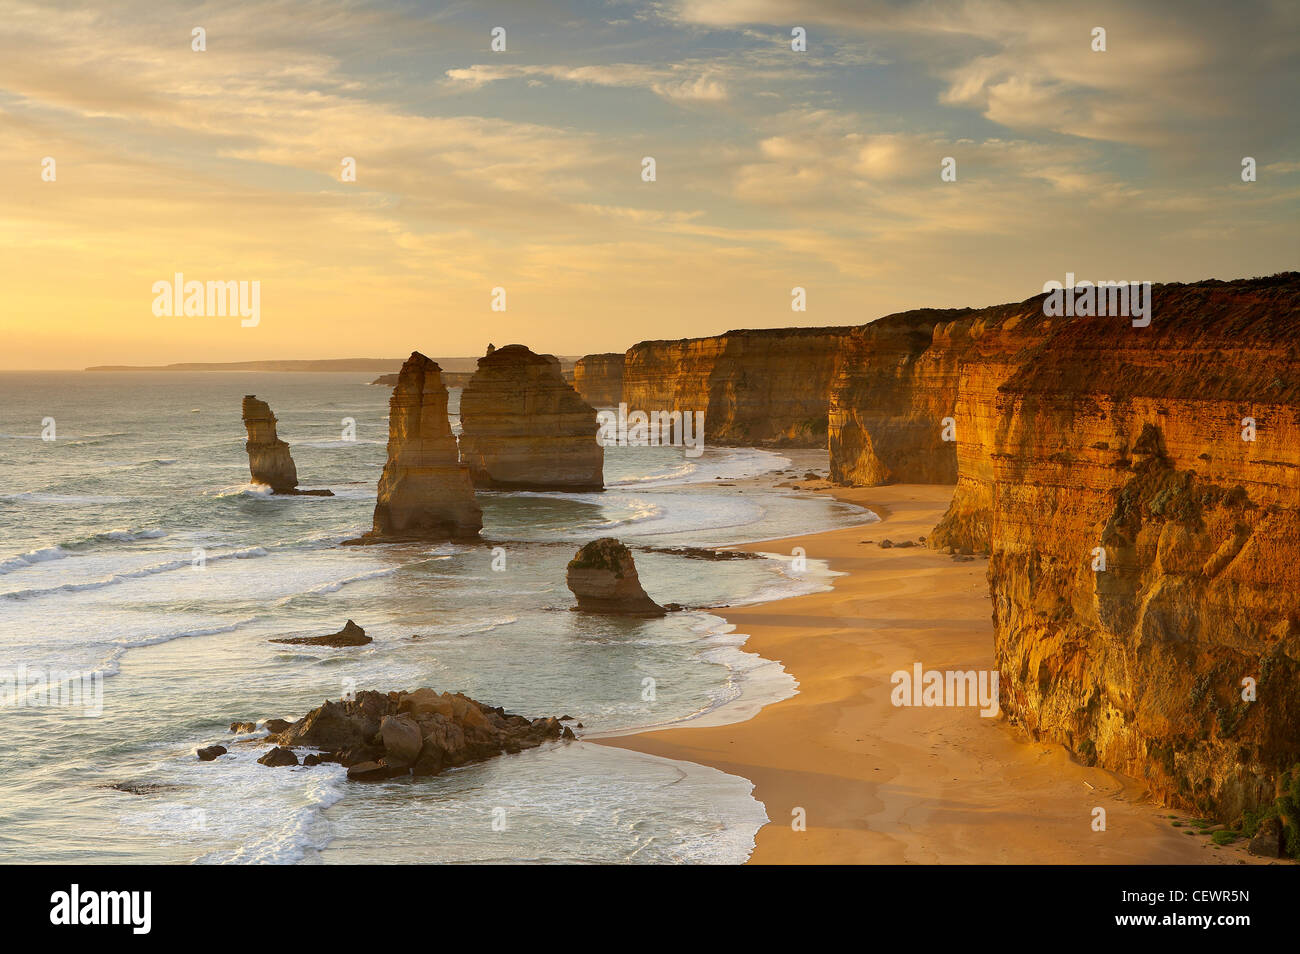 the eroded coastline of the Twelve Apostles, Port Campbell National Park, Great Ocean Road, Victoria, Australia - Stock Image